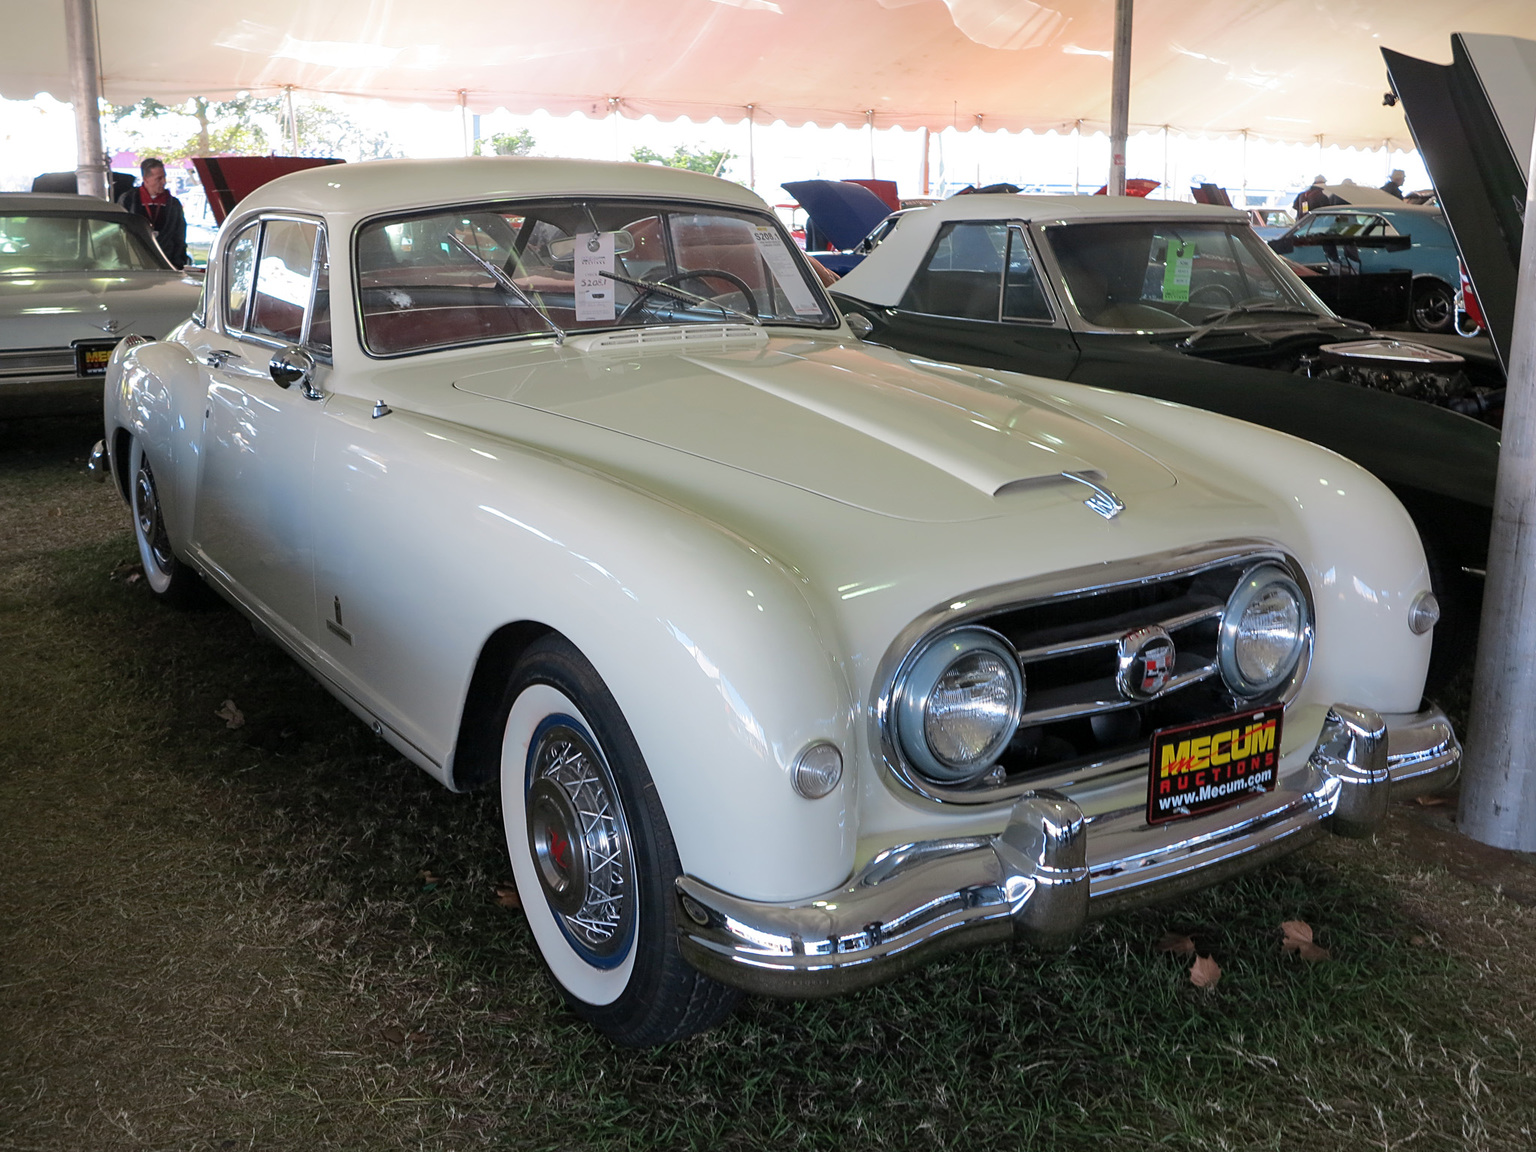 Nash-Healey Le Mans Coupe